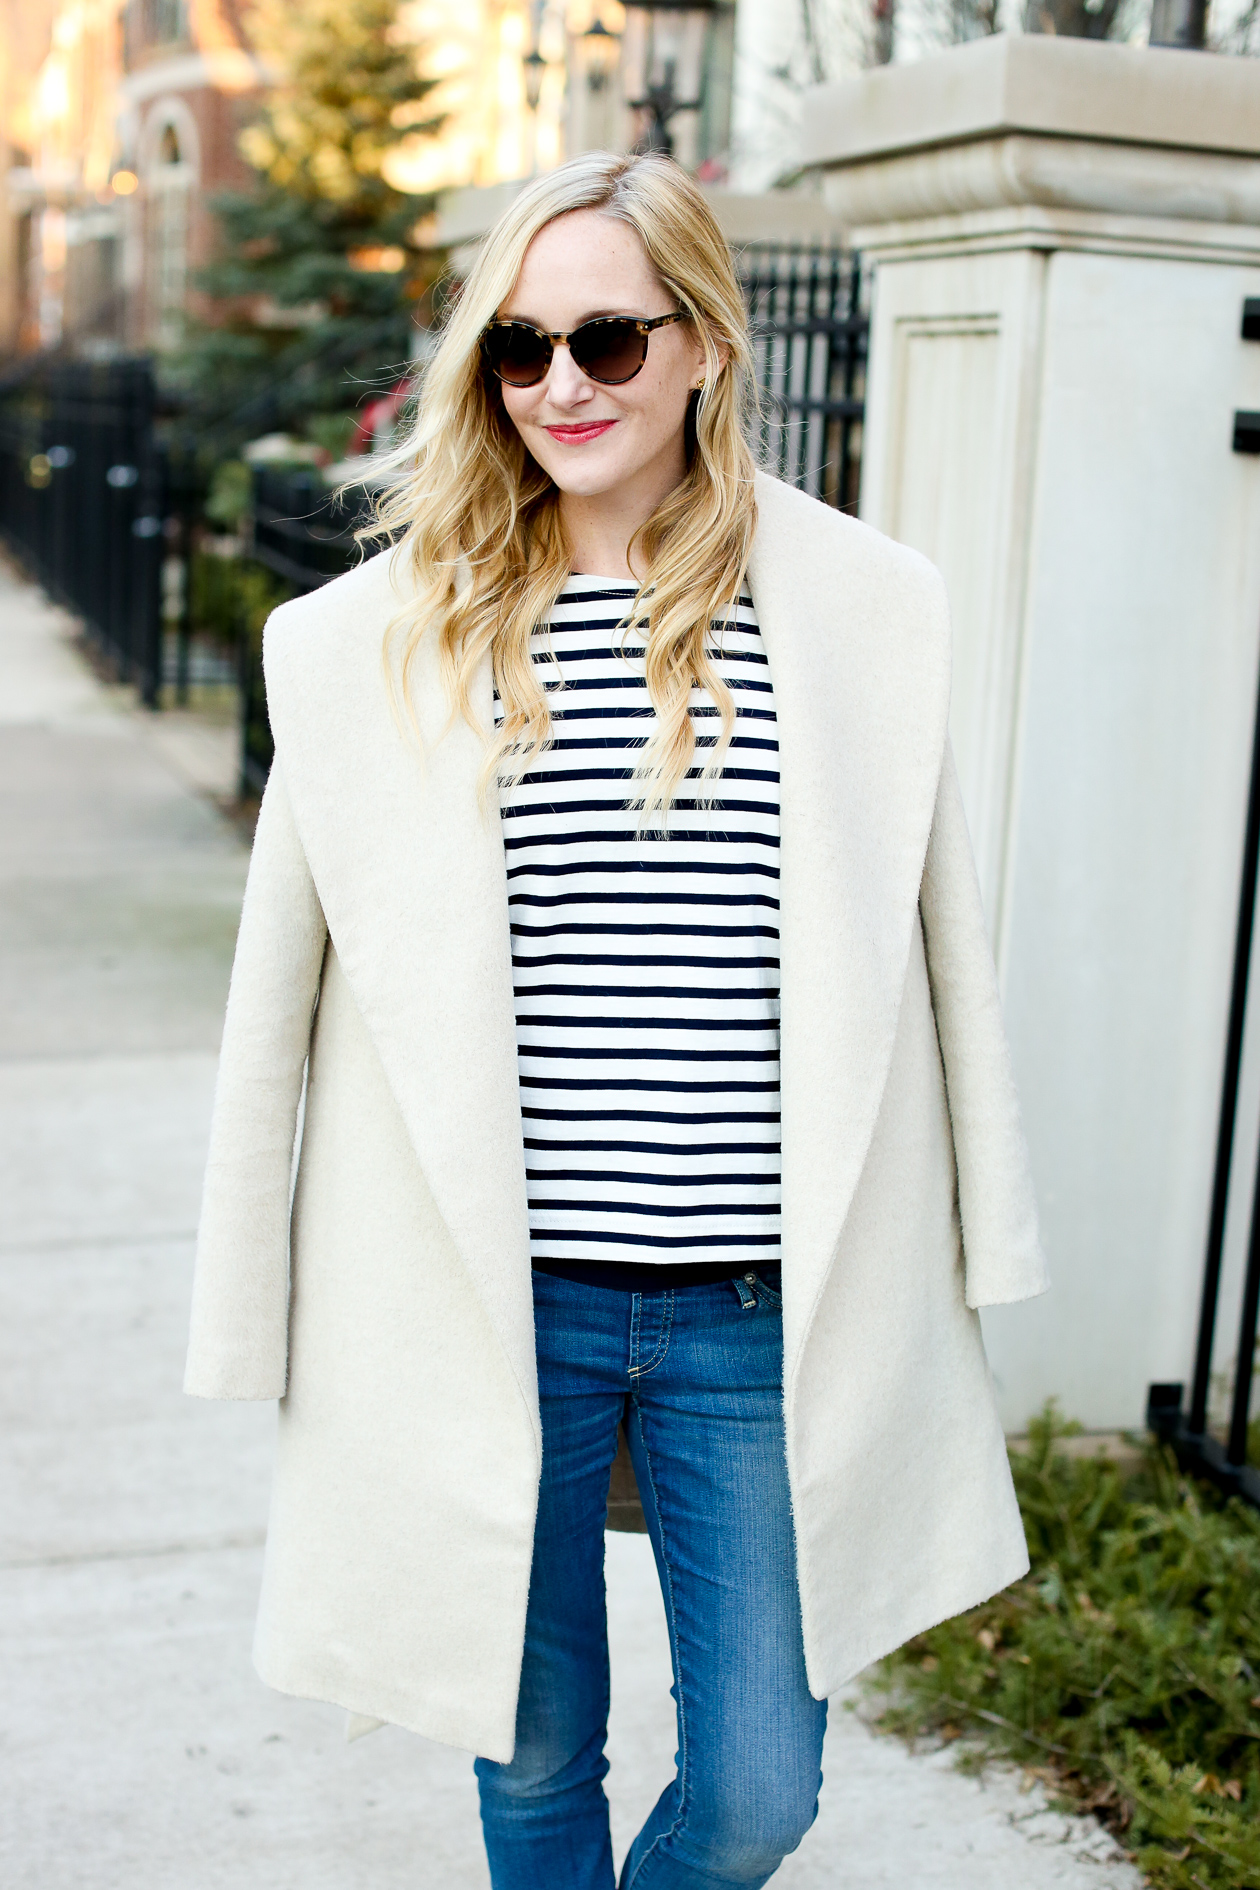 J.Crew Striped Bow Top Chicago Fashion Blogger-10